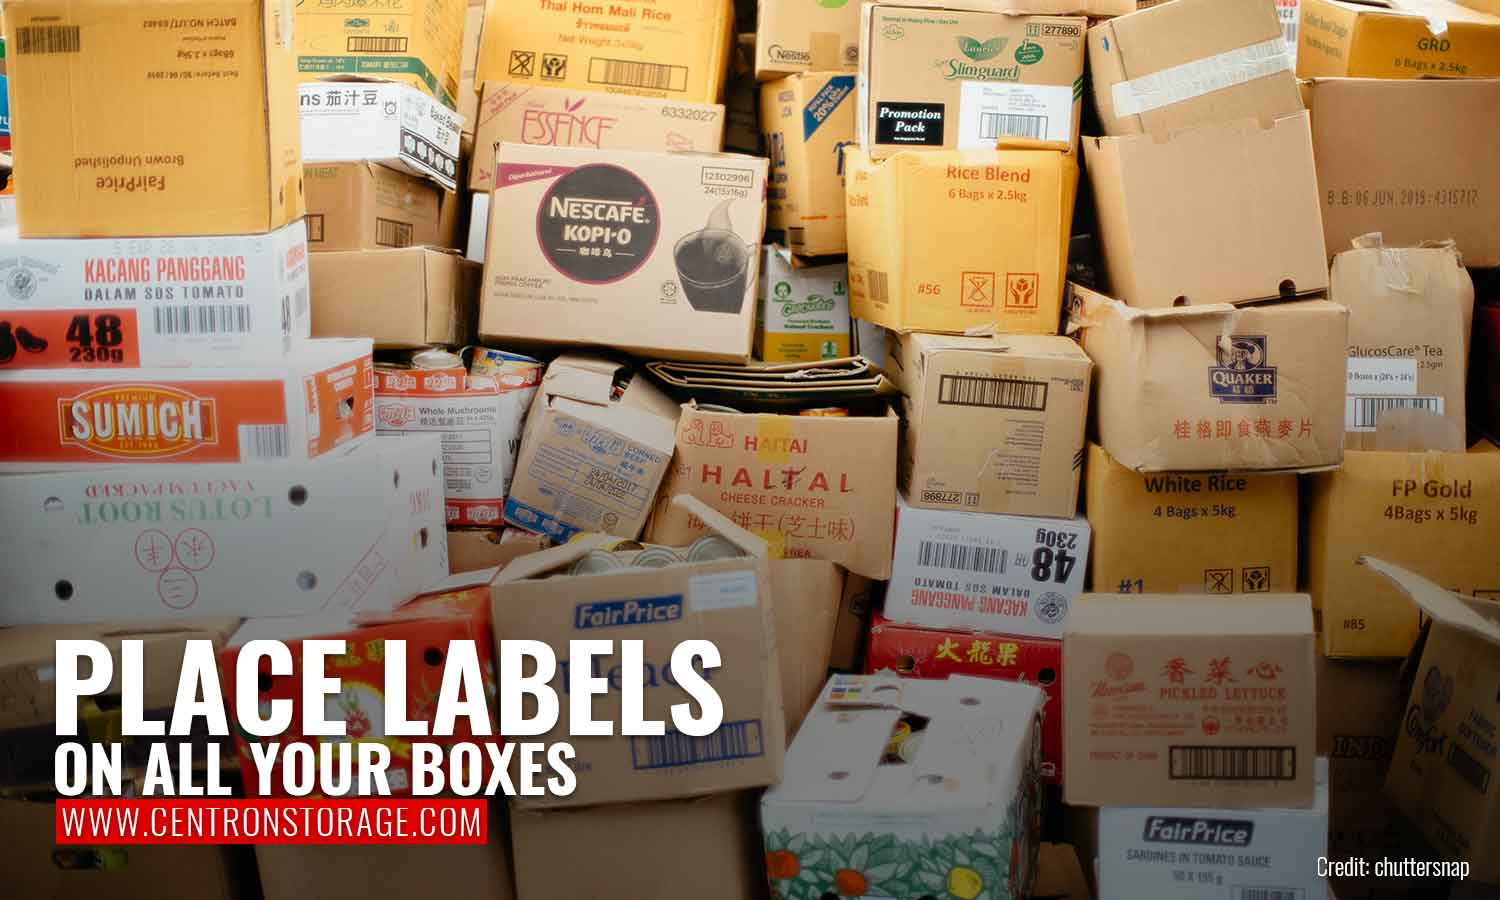 Place labels on all your boxes